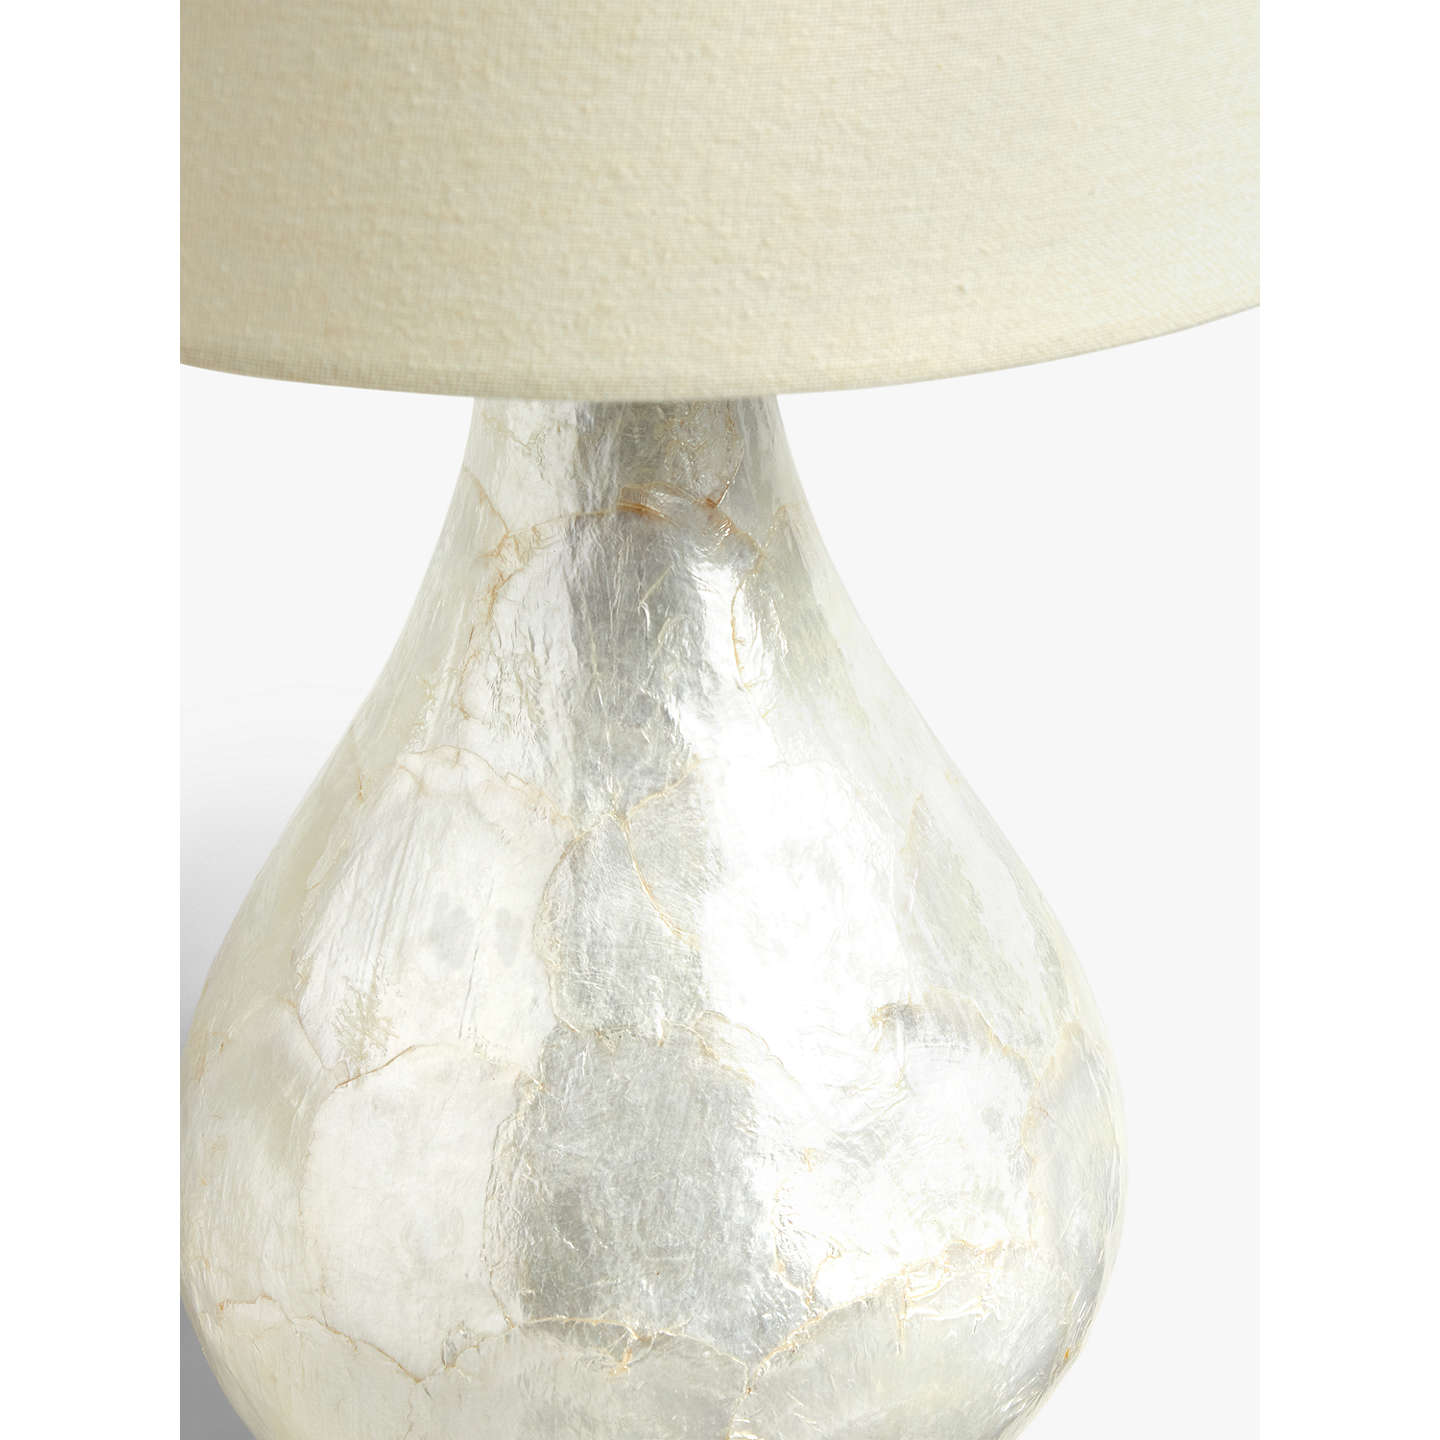 John lewis pearl dual lit capiz shell table lamp at john lewis buyjohn lewis pearl dual lit capiz shell table lamp online at johnlewis aloadofball Gallery